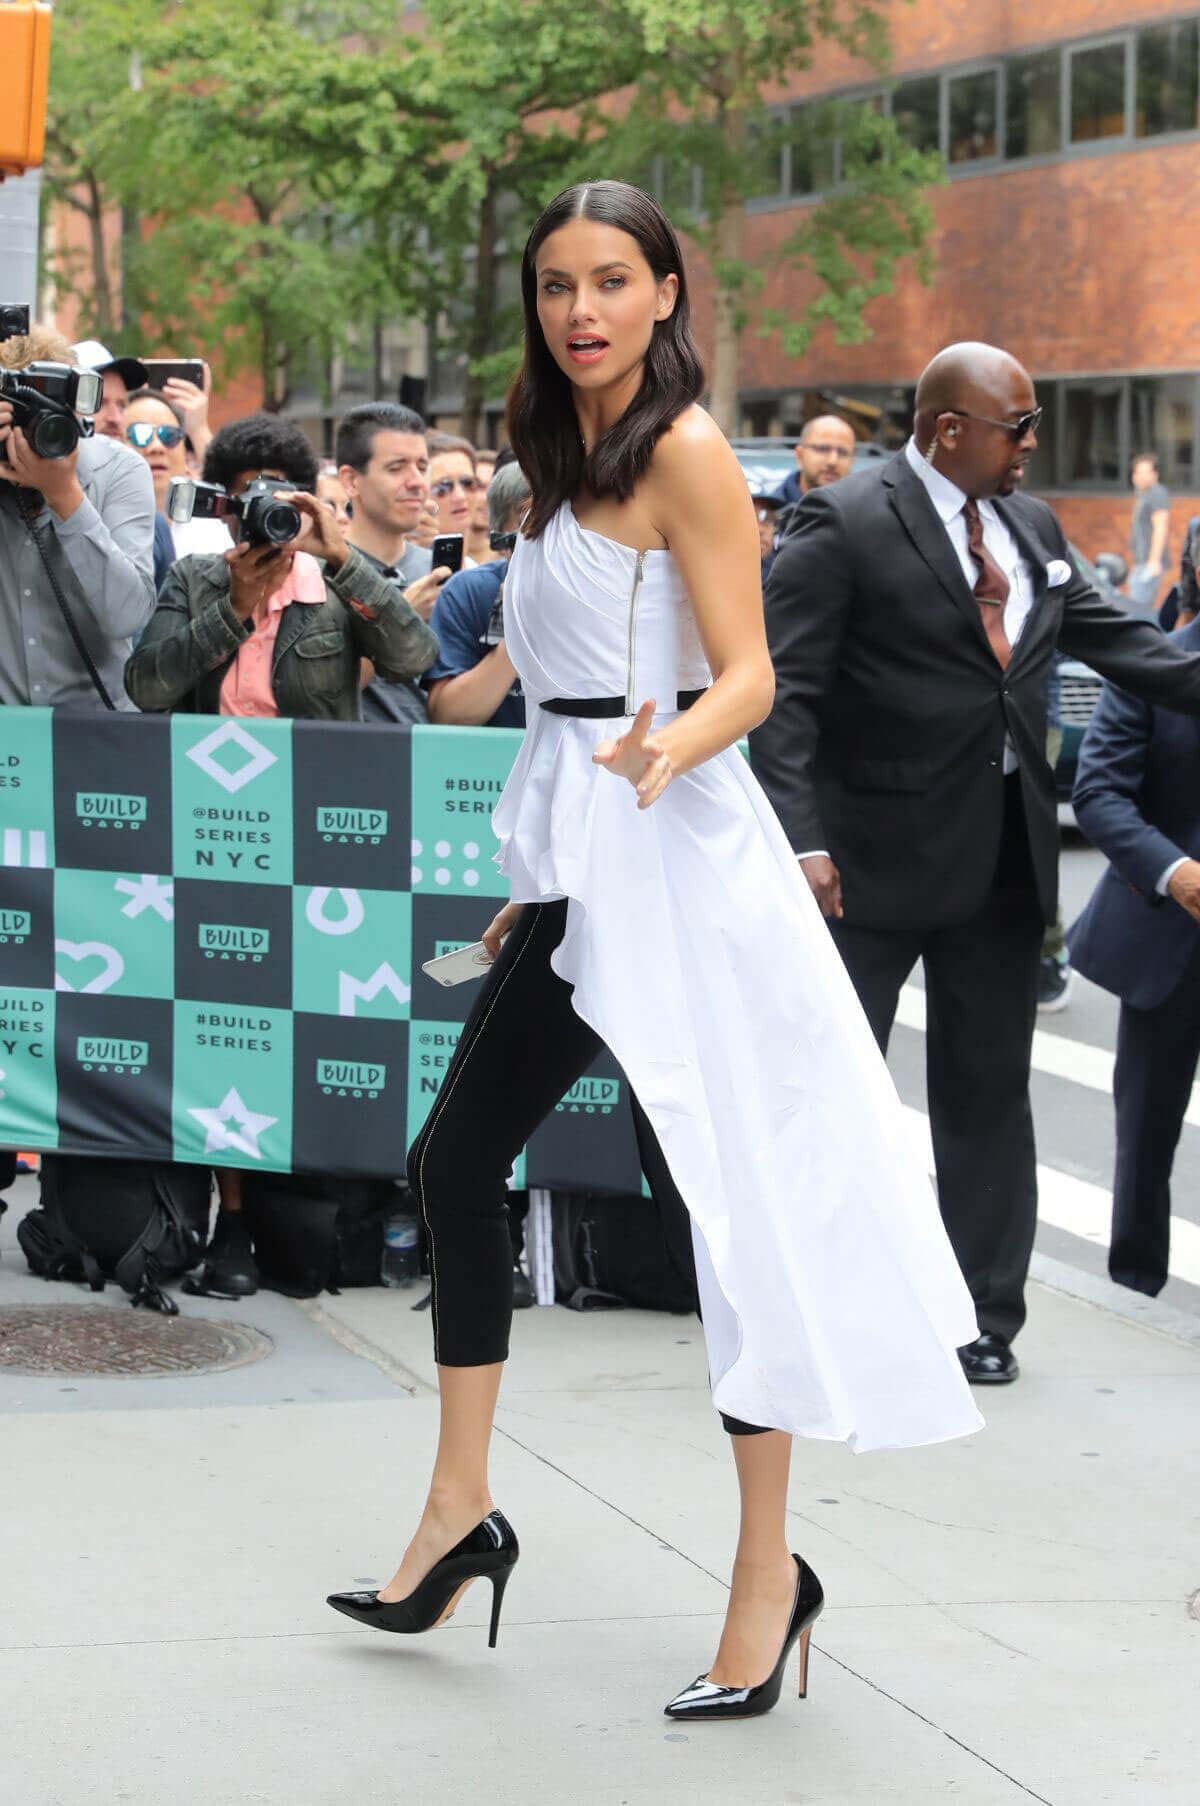 Adriana Lima Stills Arrives at AOL Build Series in New York